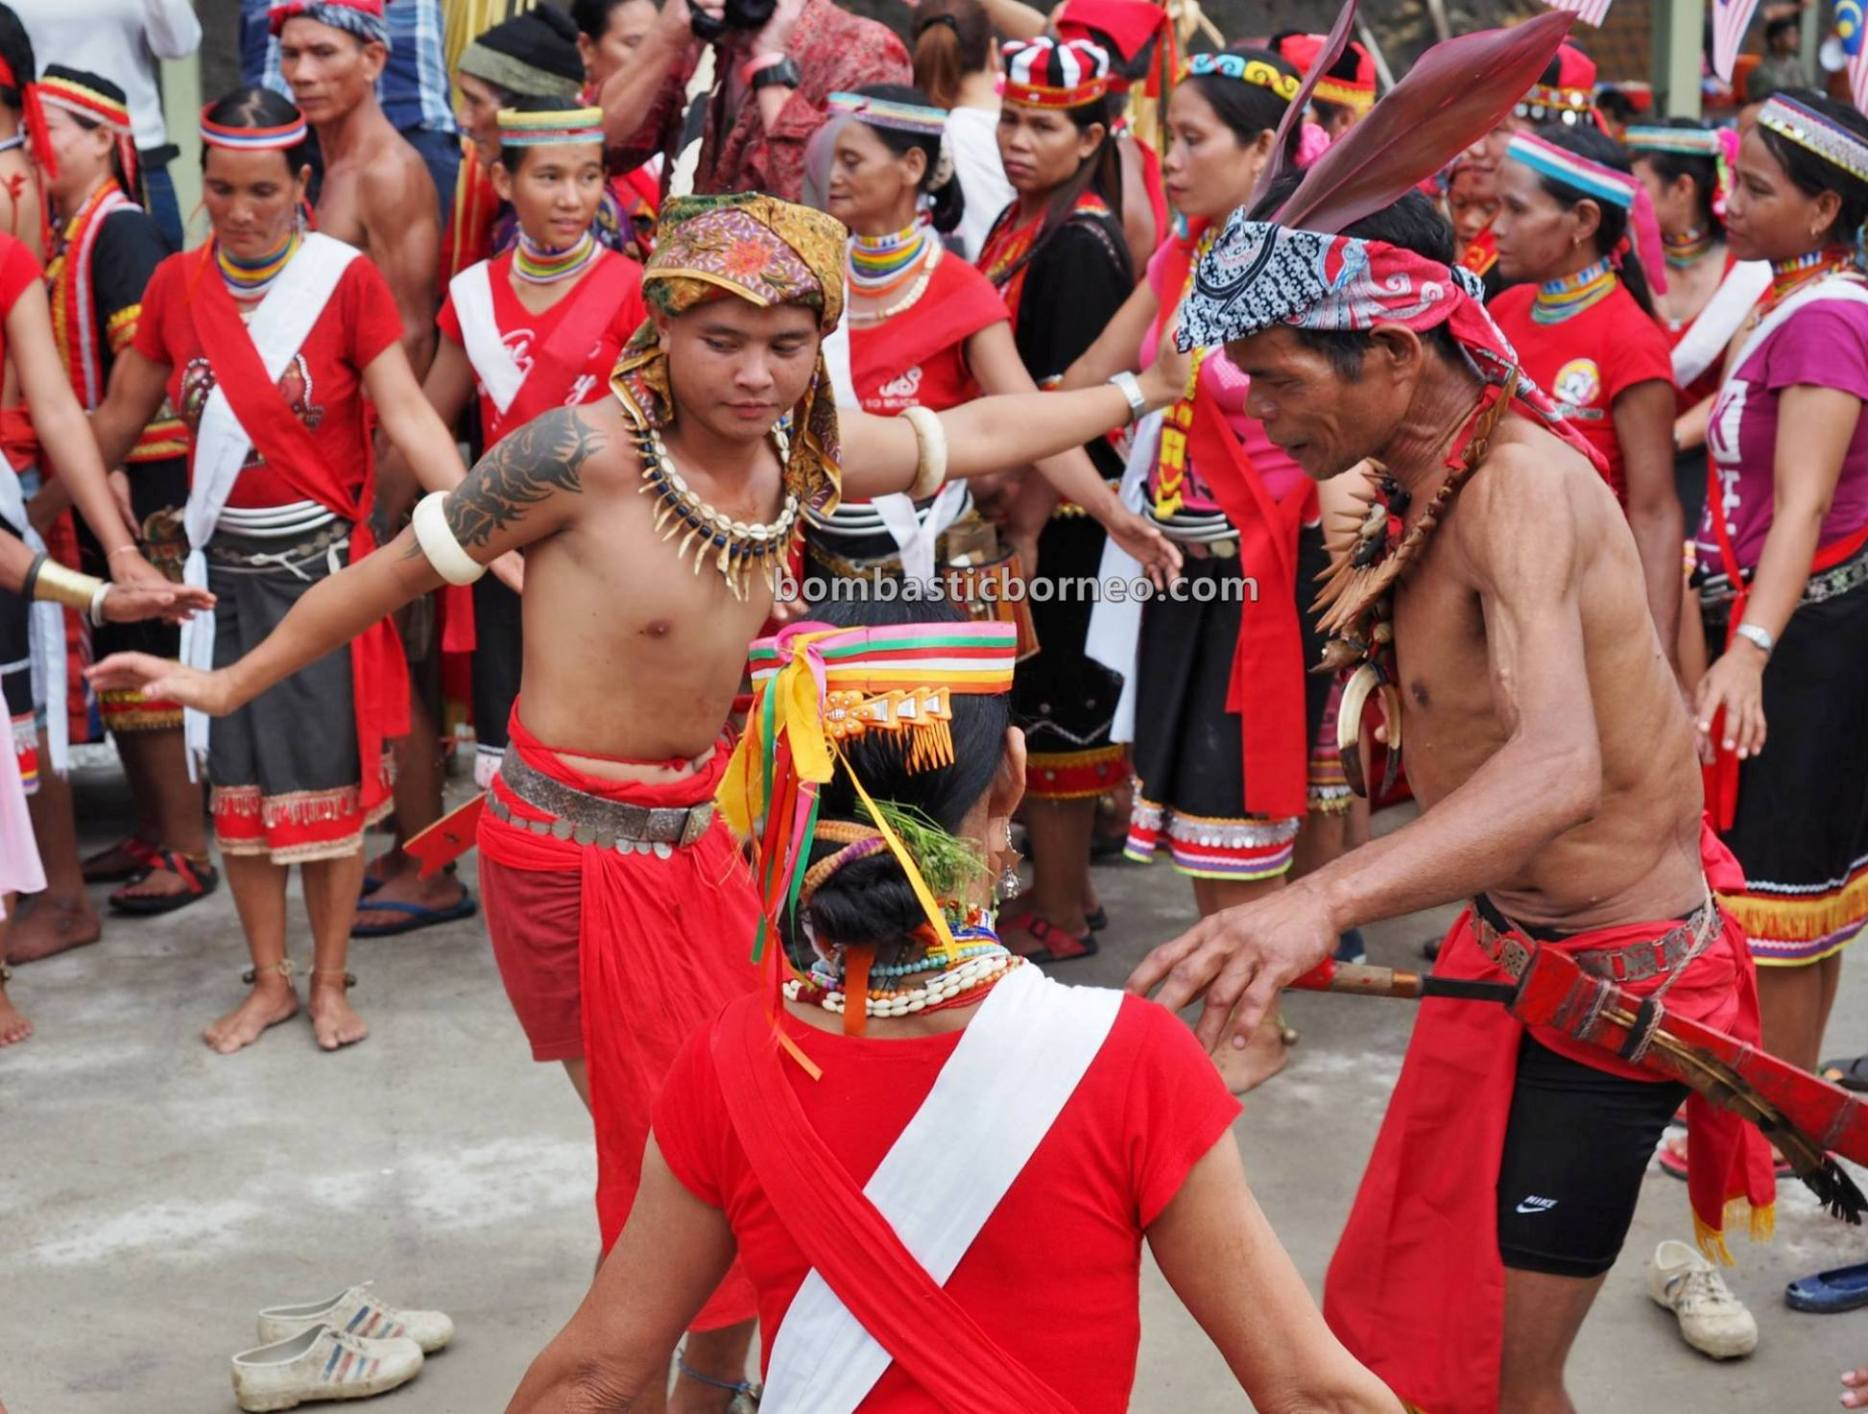 Kampung Gumbang, Gawai Serumpun, Dayak Bidayuh, paddy harvest festival, authentic, traditional, backpackers, Kuching, Sarawak, culture, native, tribe, Tourist attraction, travel guide, trans borneo,